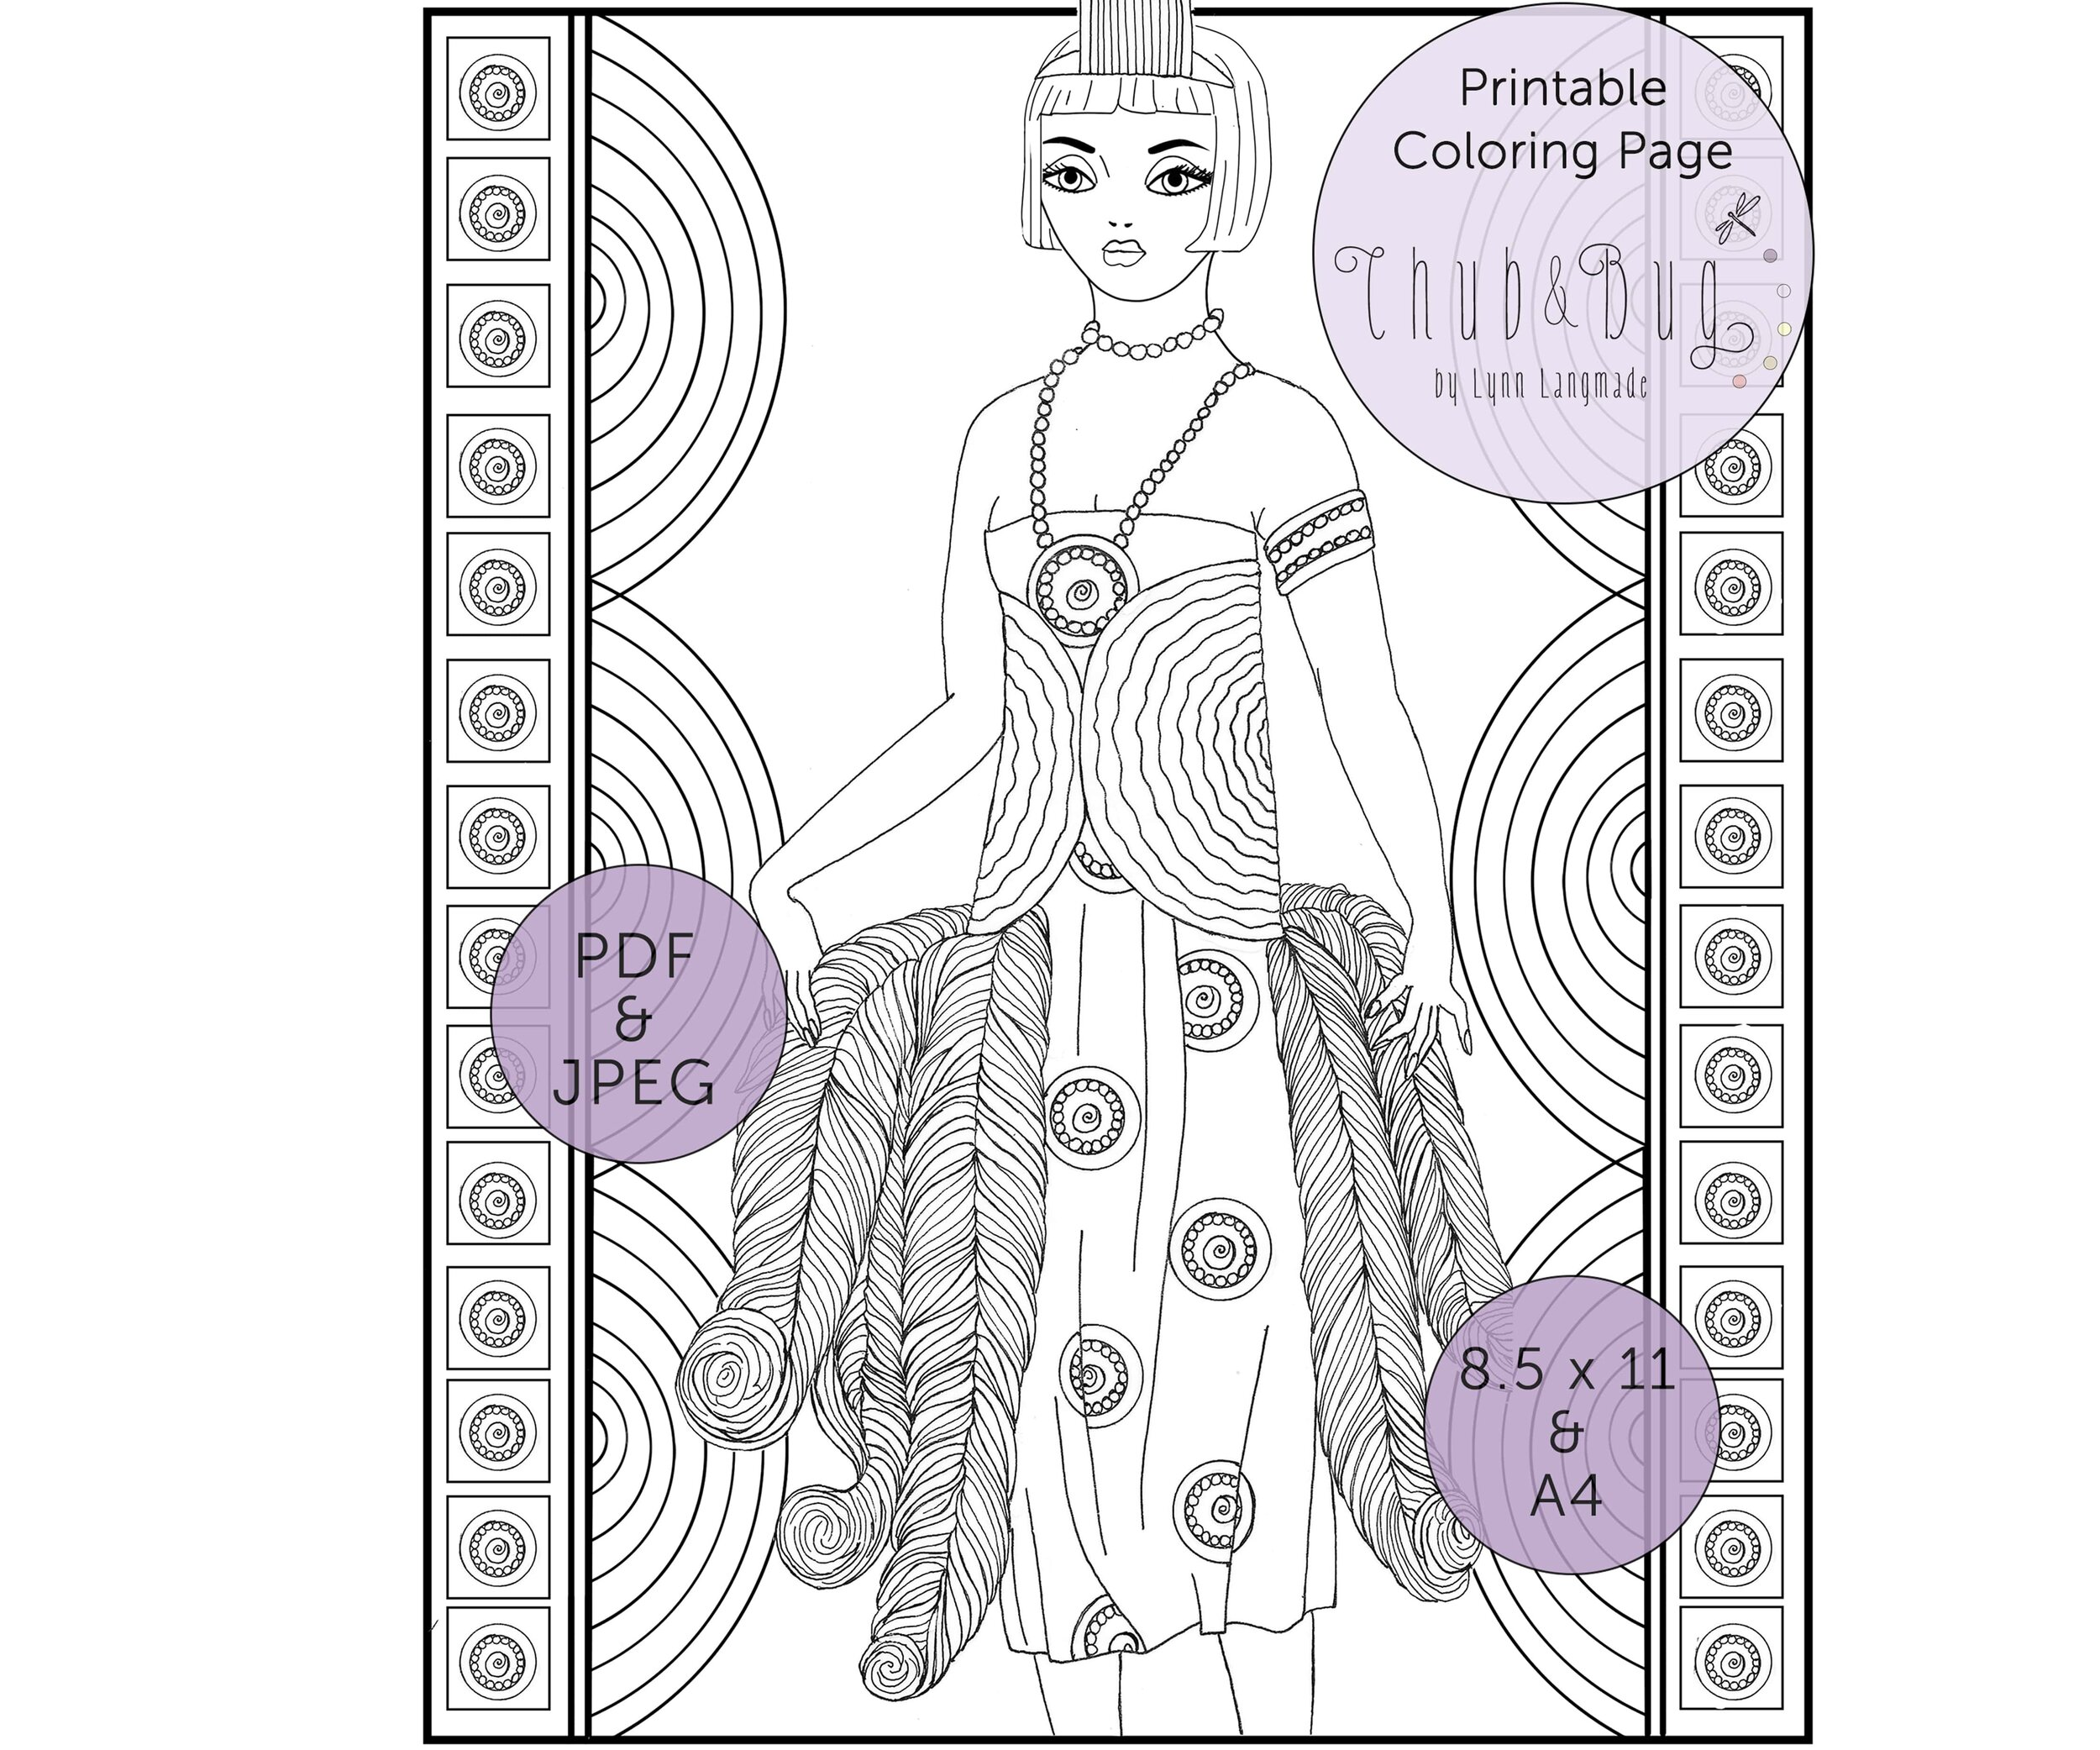 Coloring Page - Fashion gal | Coloring pages, Cute coloring pages ... | 833x1000